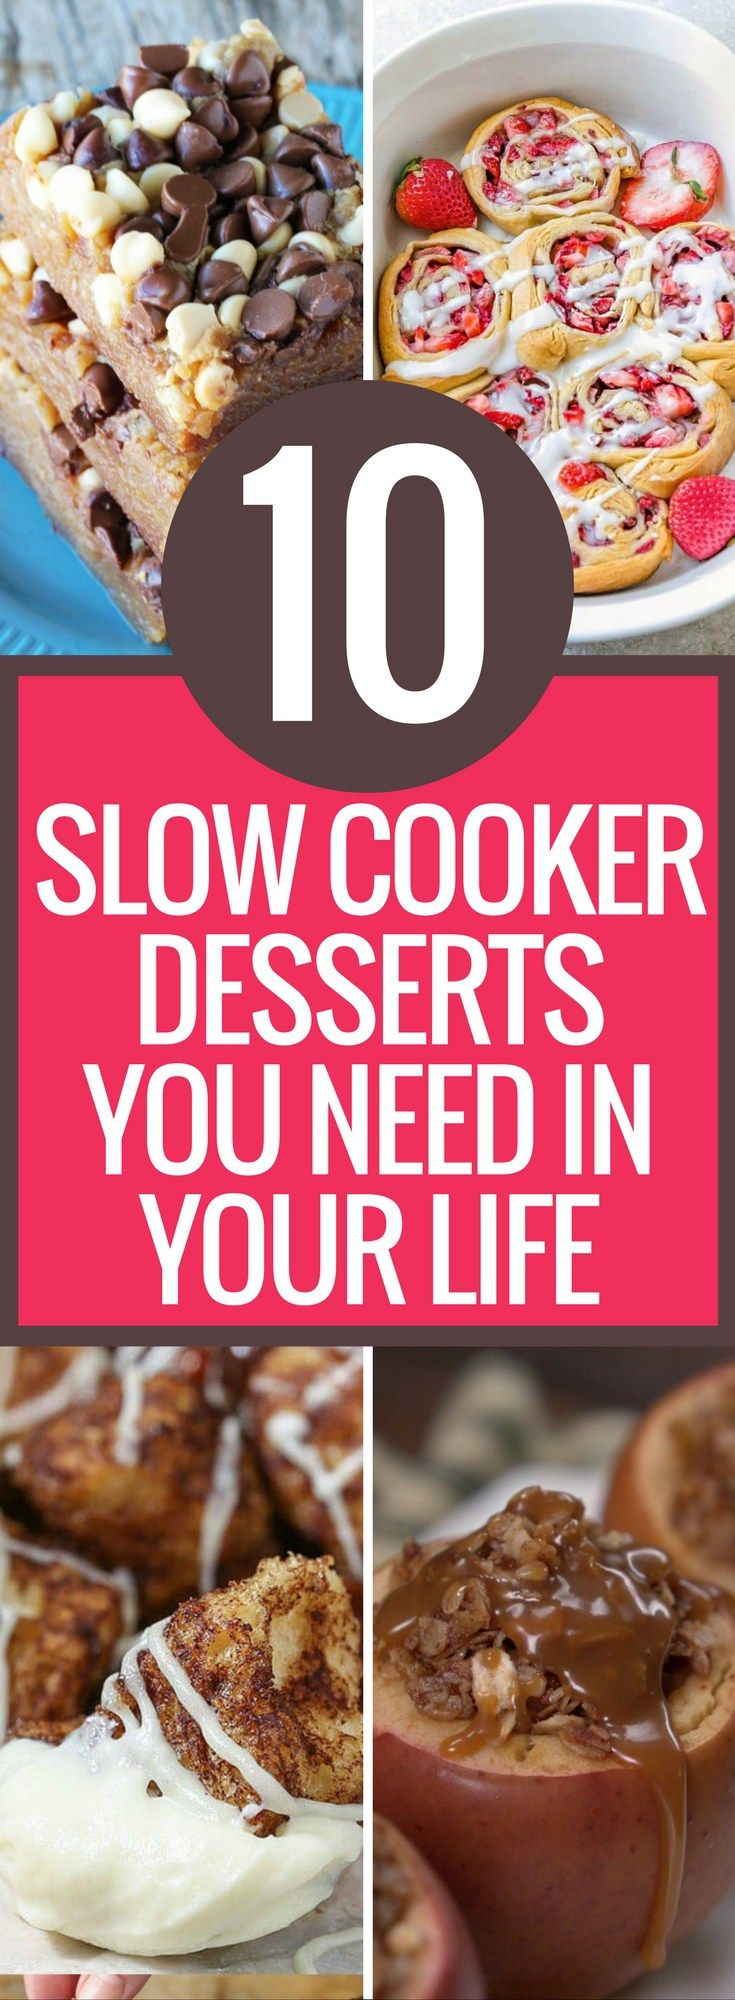 I am so glad I found this AMAZING list of 10 simple and easy slow cooker dessert recipes. My mouth was literally watering looking at these desserts. I am using this list for all of my family dinners this year! Slow Cooker Dessert Recipes | Crockpot Dessert Recipes | Easy Slow Cooker Recipes